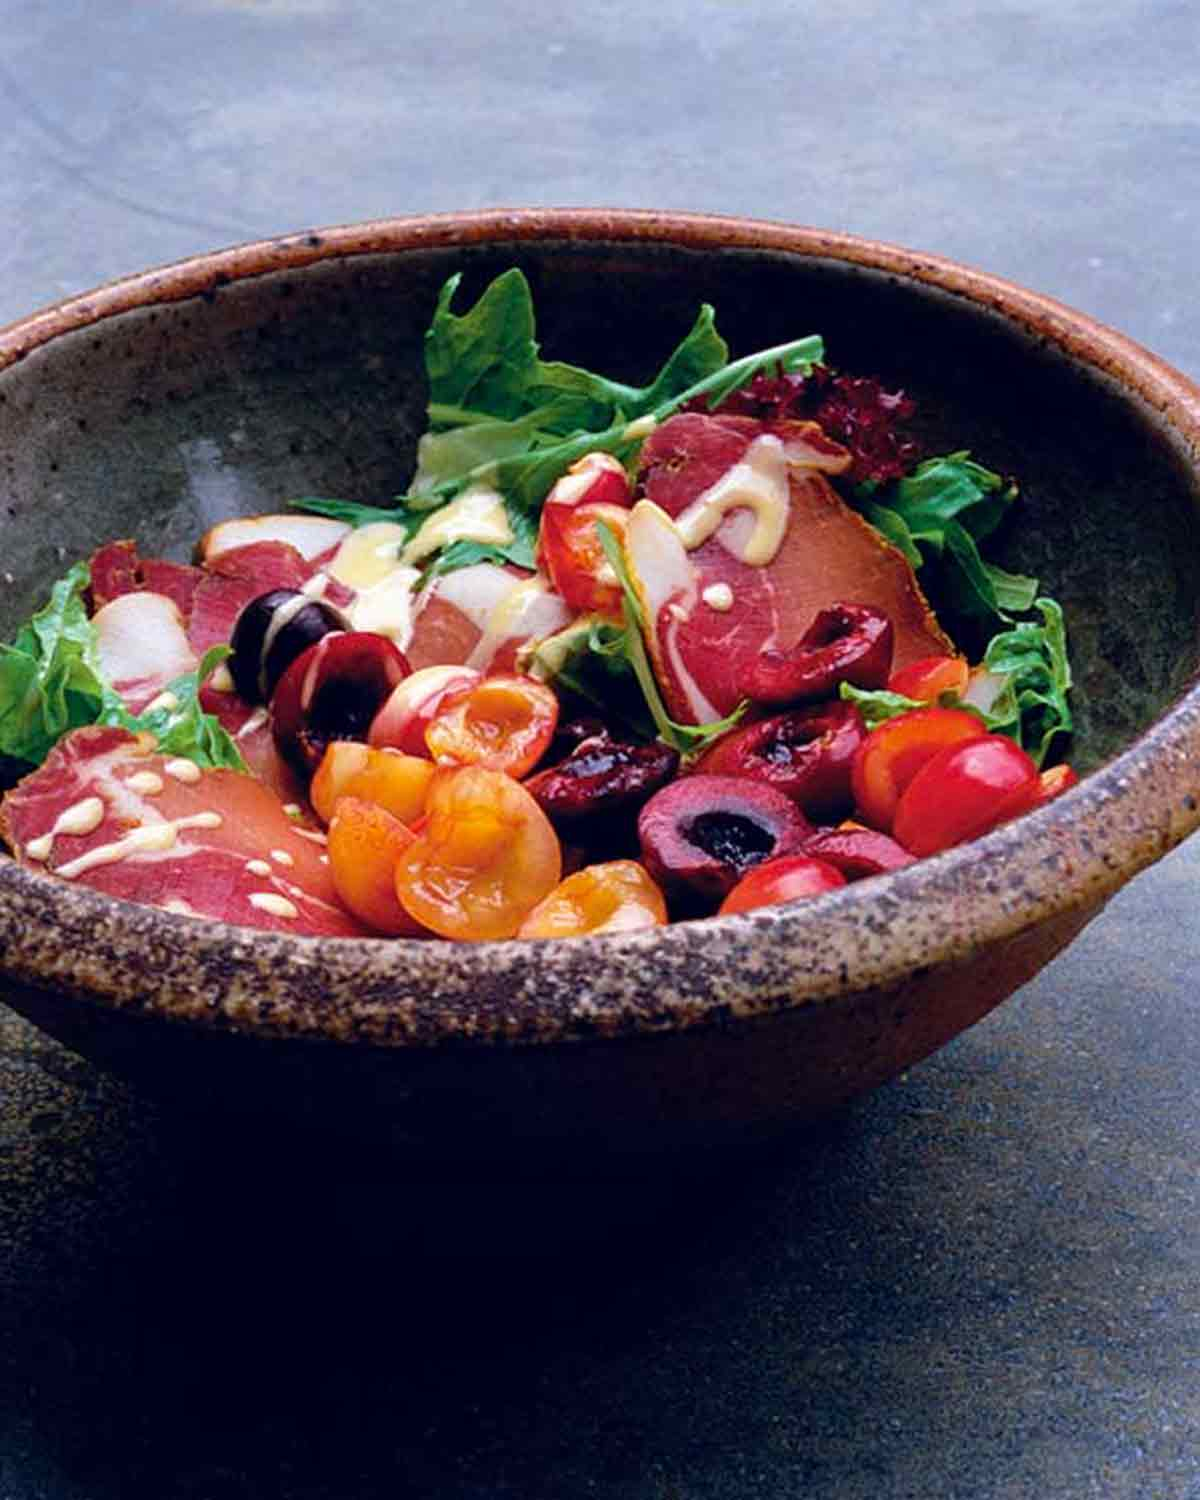 A ceramic bowl filled with mixed green salad with Prosciutto and cherries and drizzled with creamy Dijon dressing.